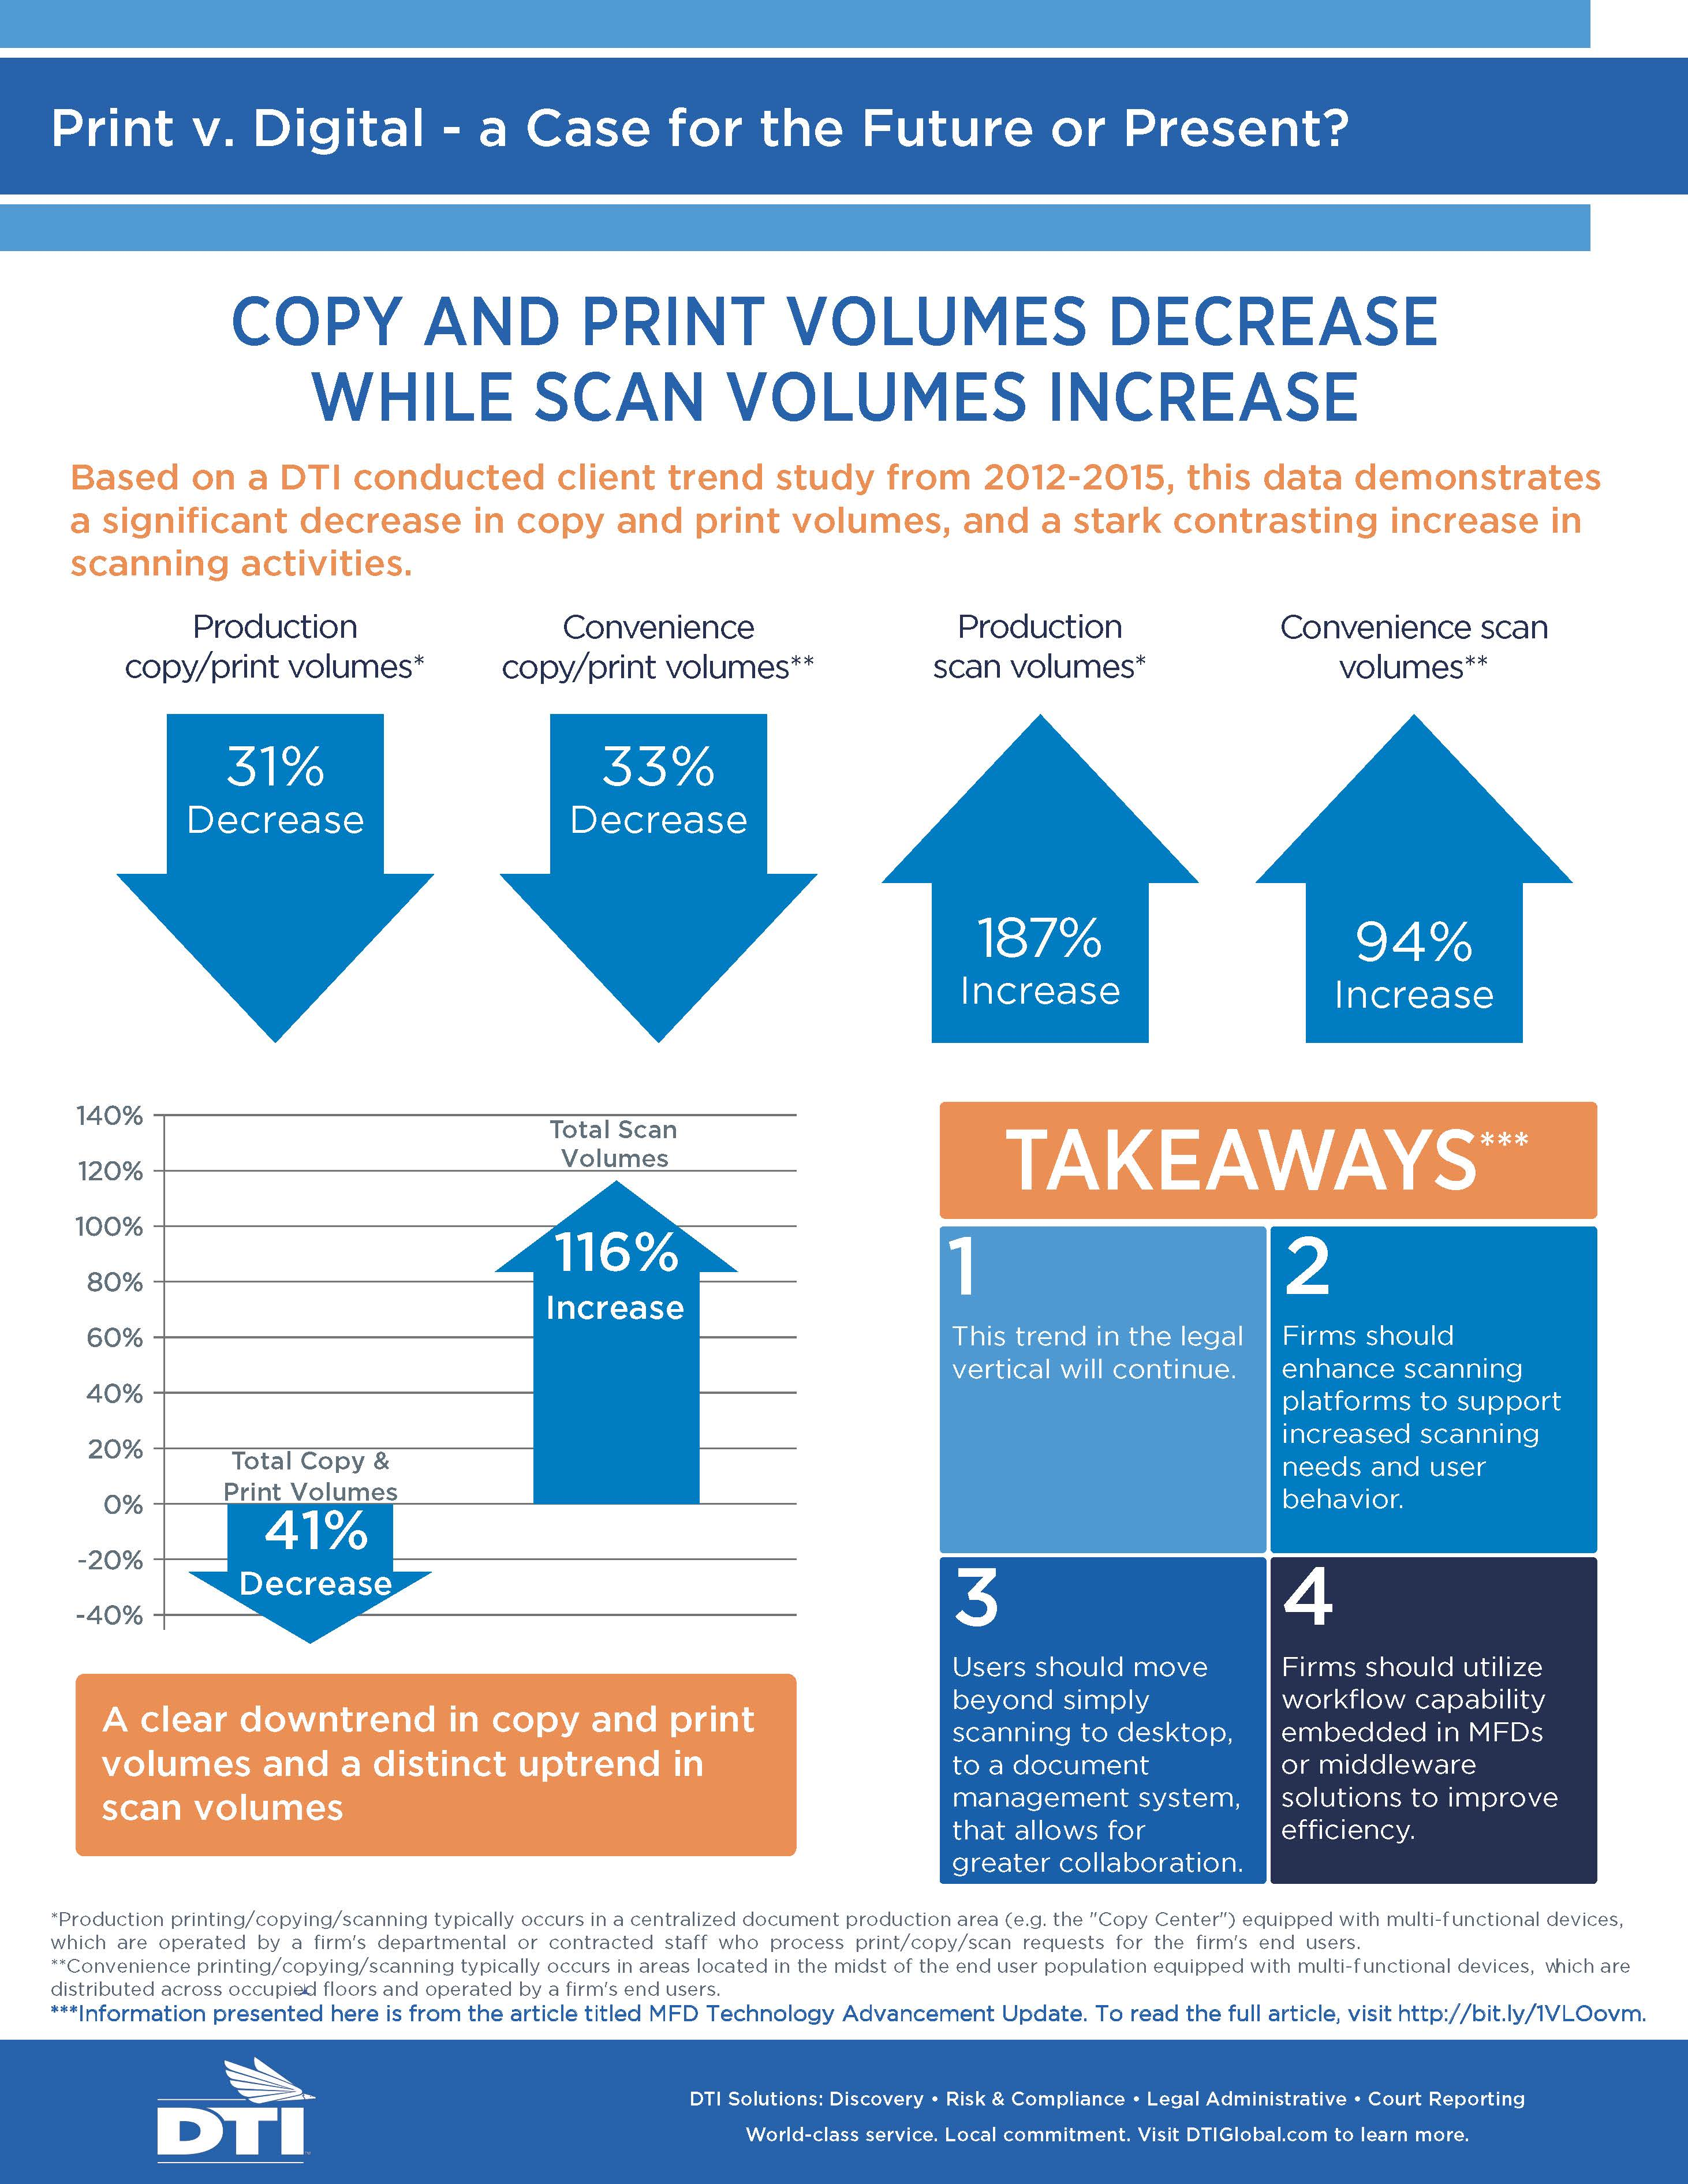 Print vs. Digital - a Case for the Future or Present?